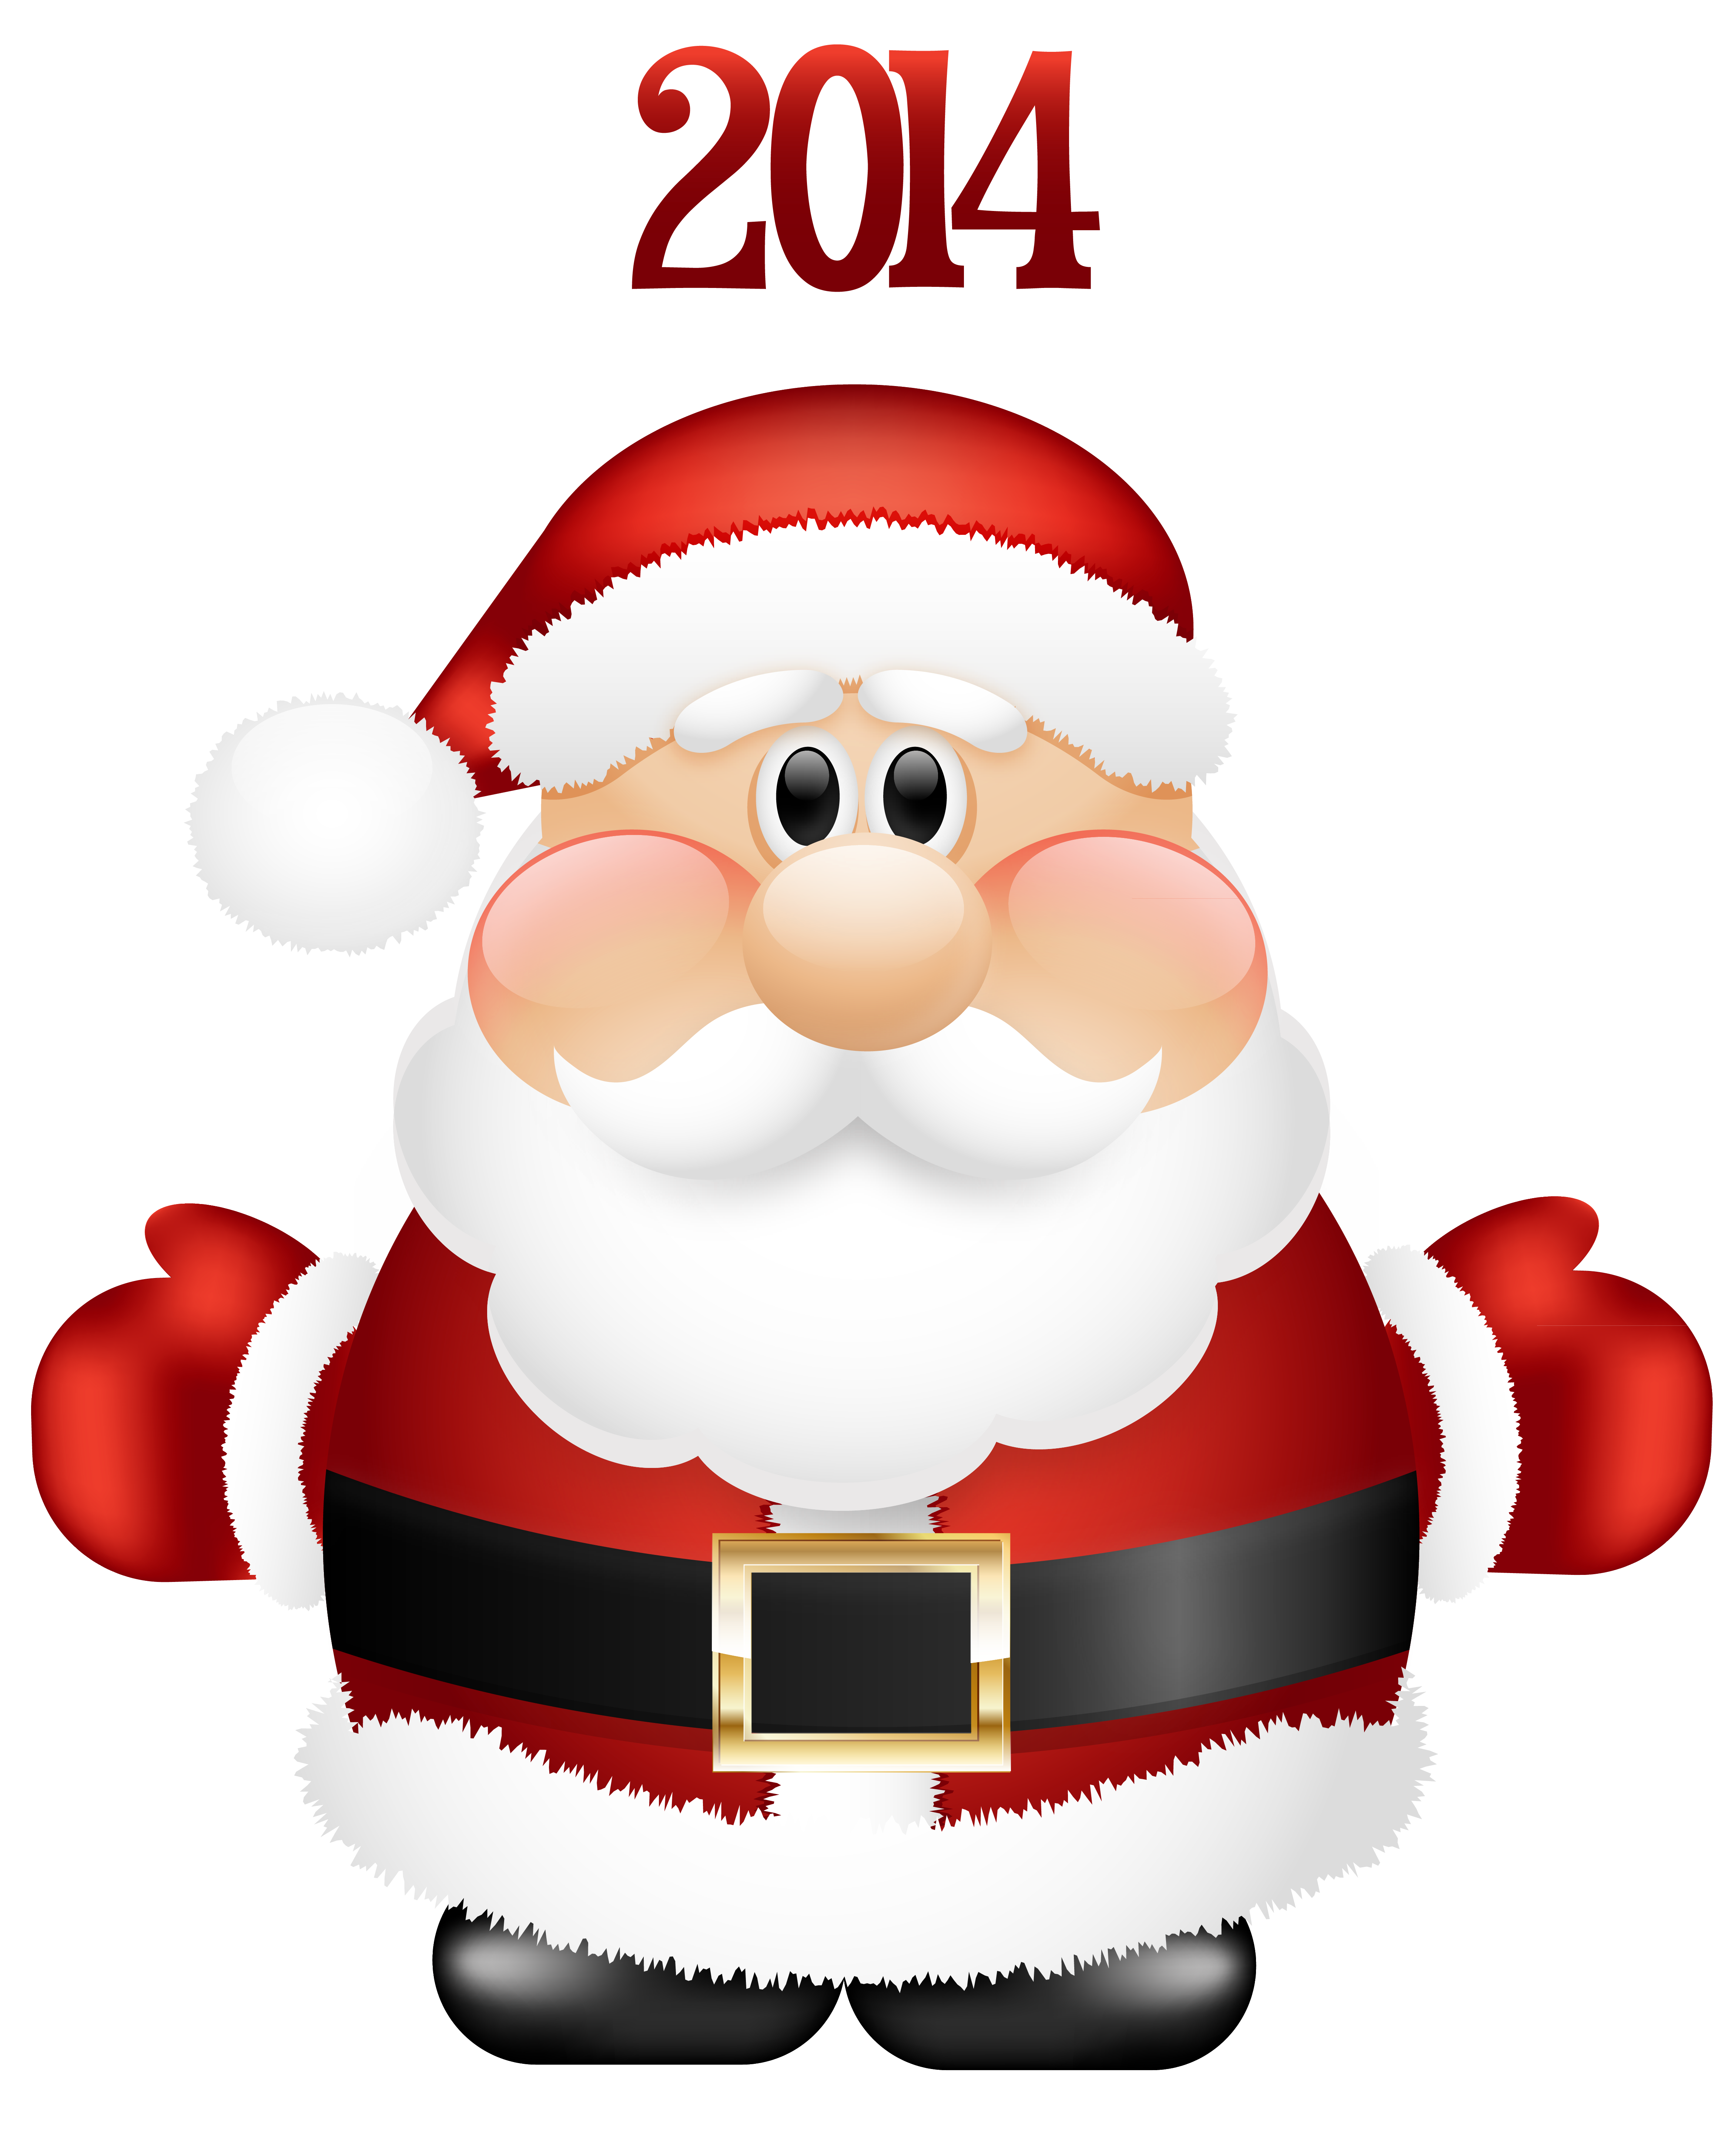 Santa cat clipart picture freeuse download Santa Clause Clipart at GetDrawings.com | Free for personal use ... picture freeuse download